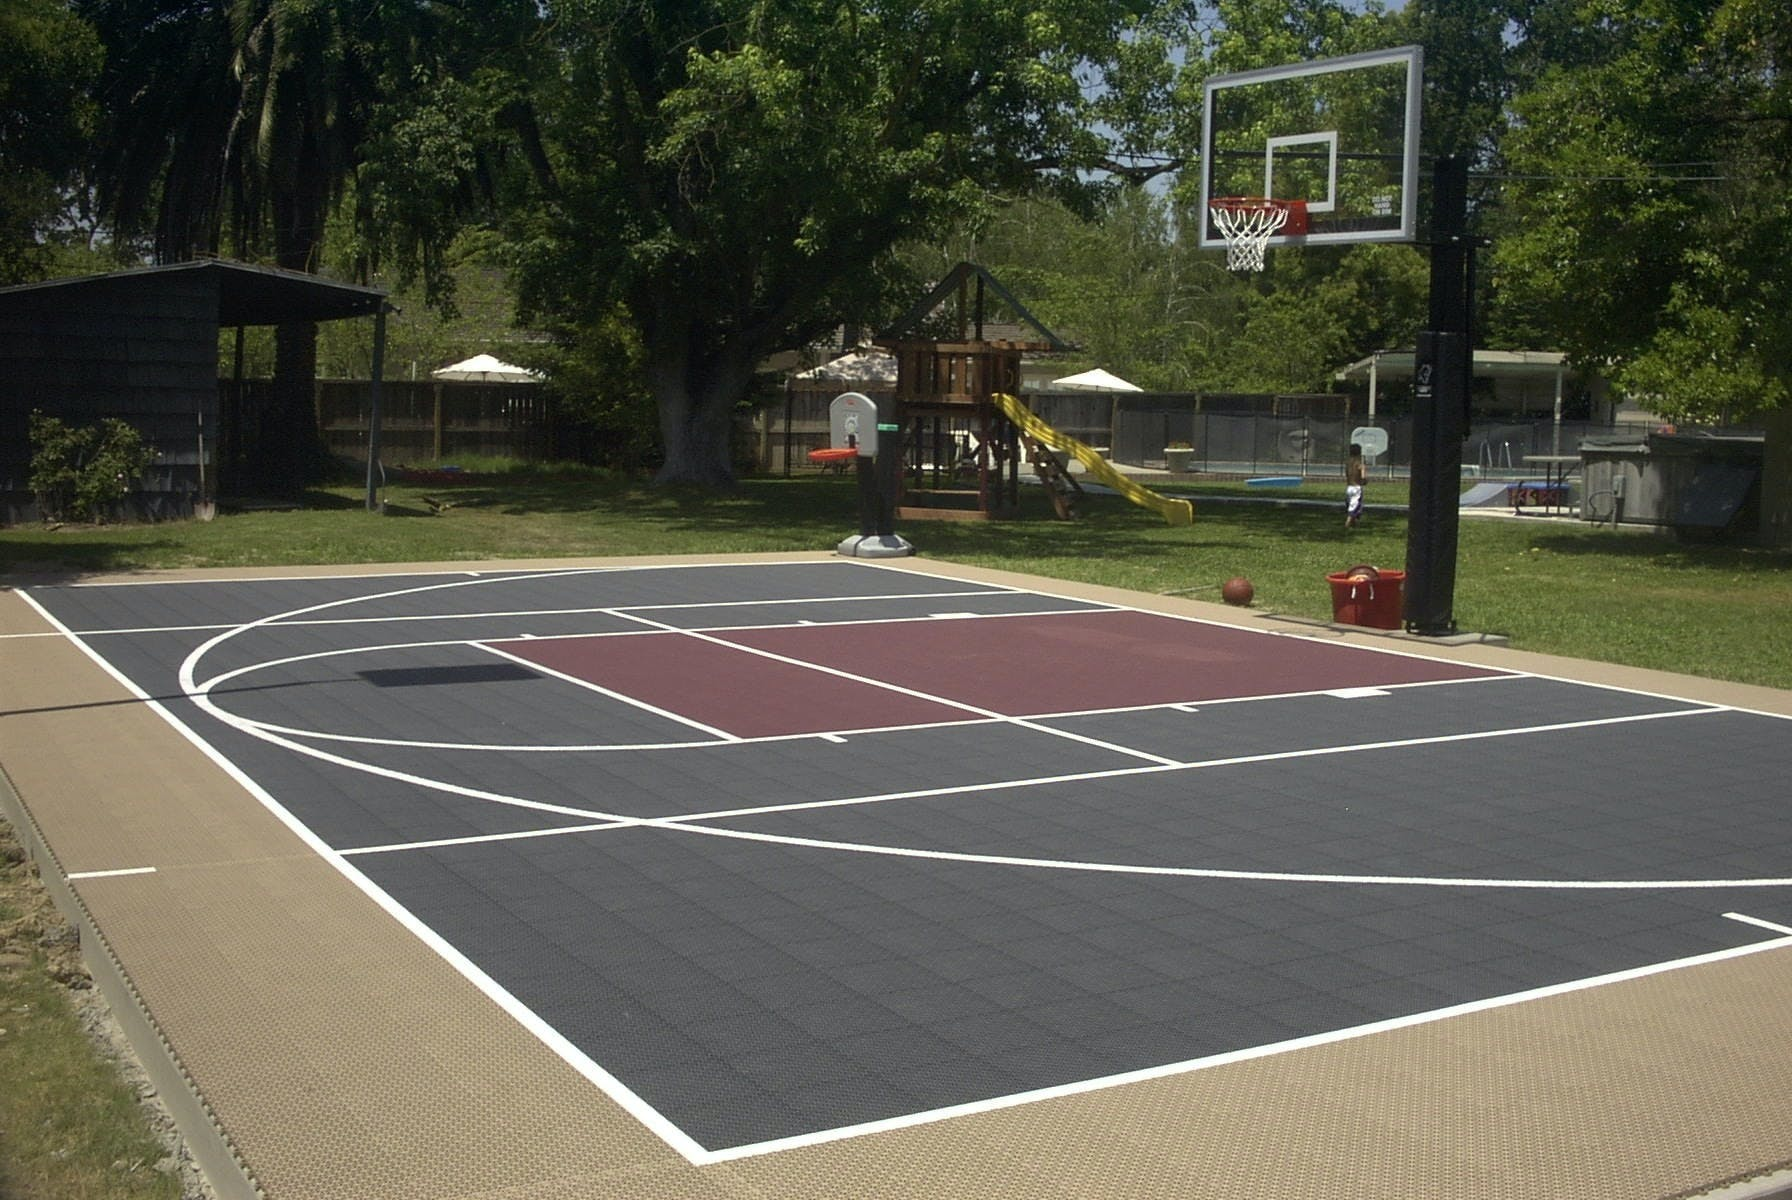 Half-court basketball court